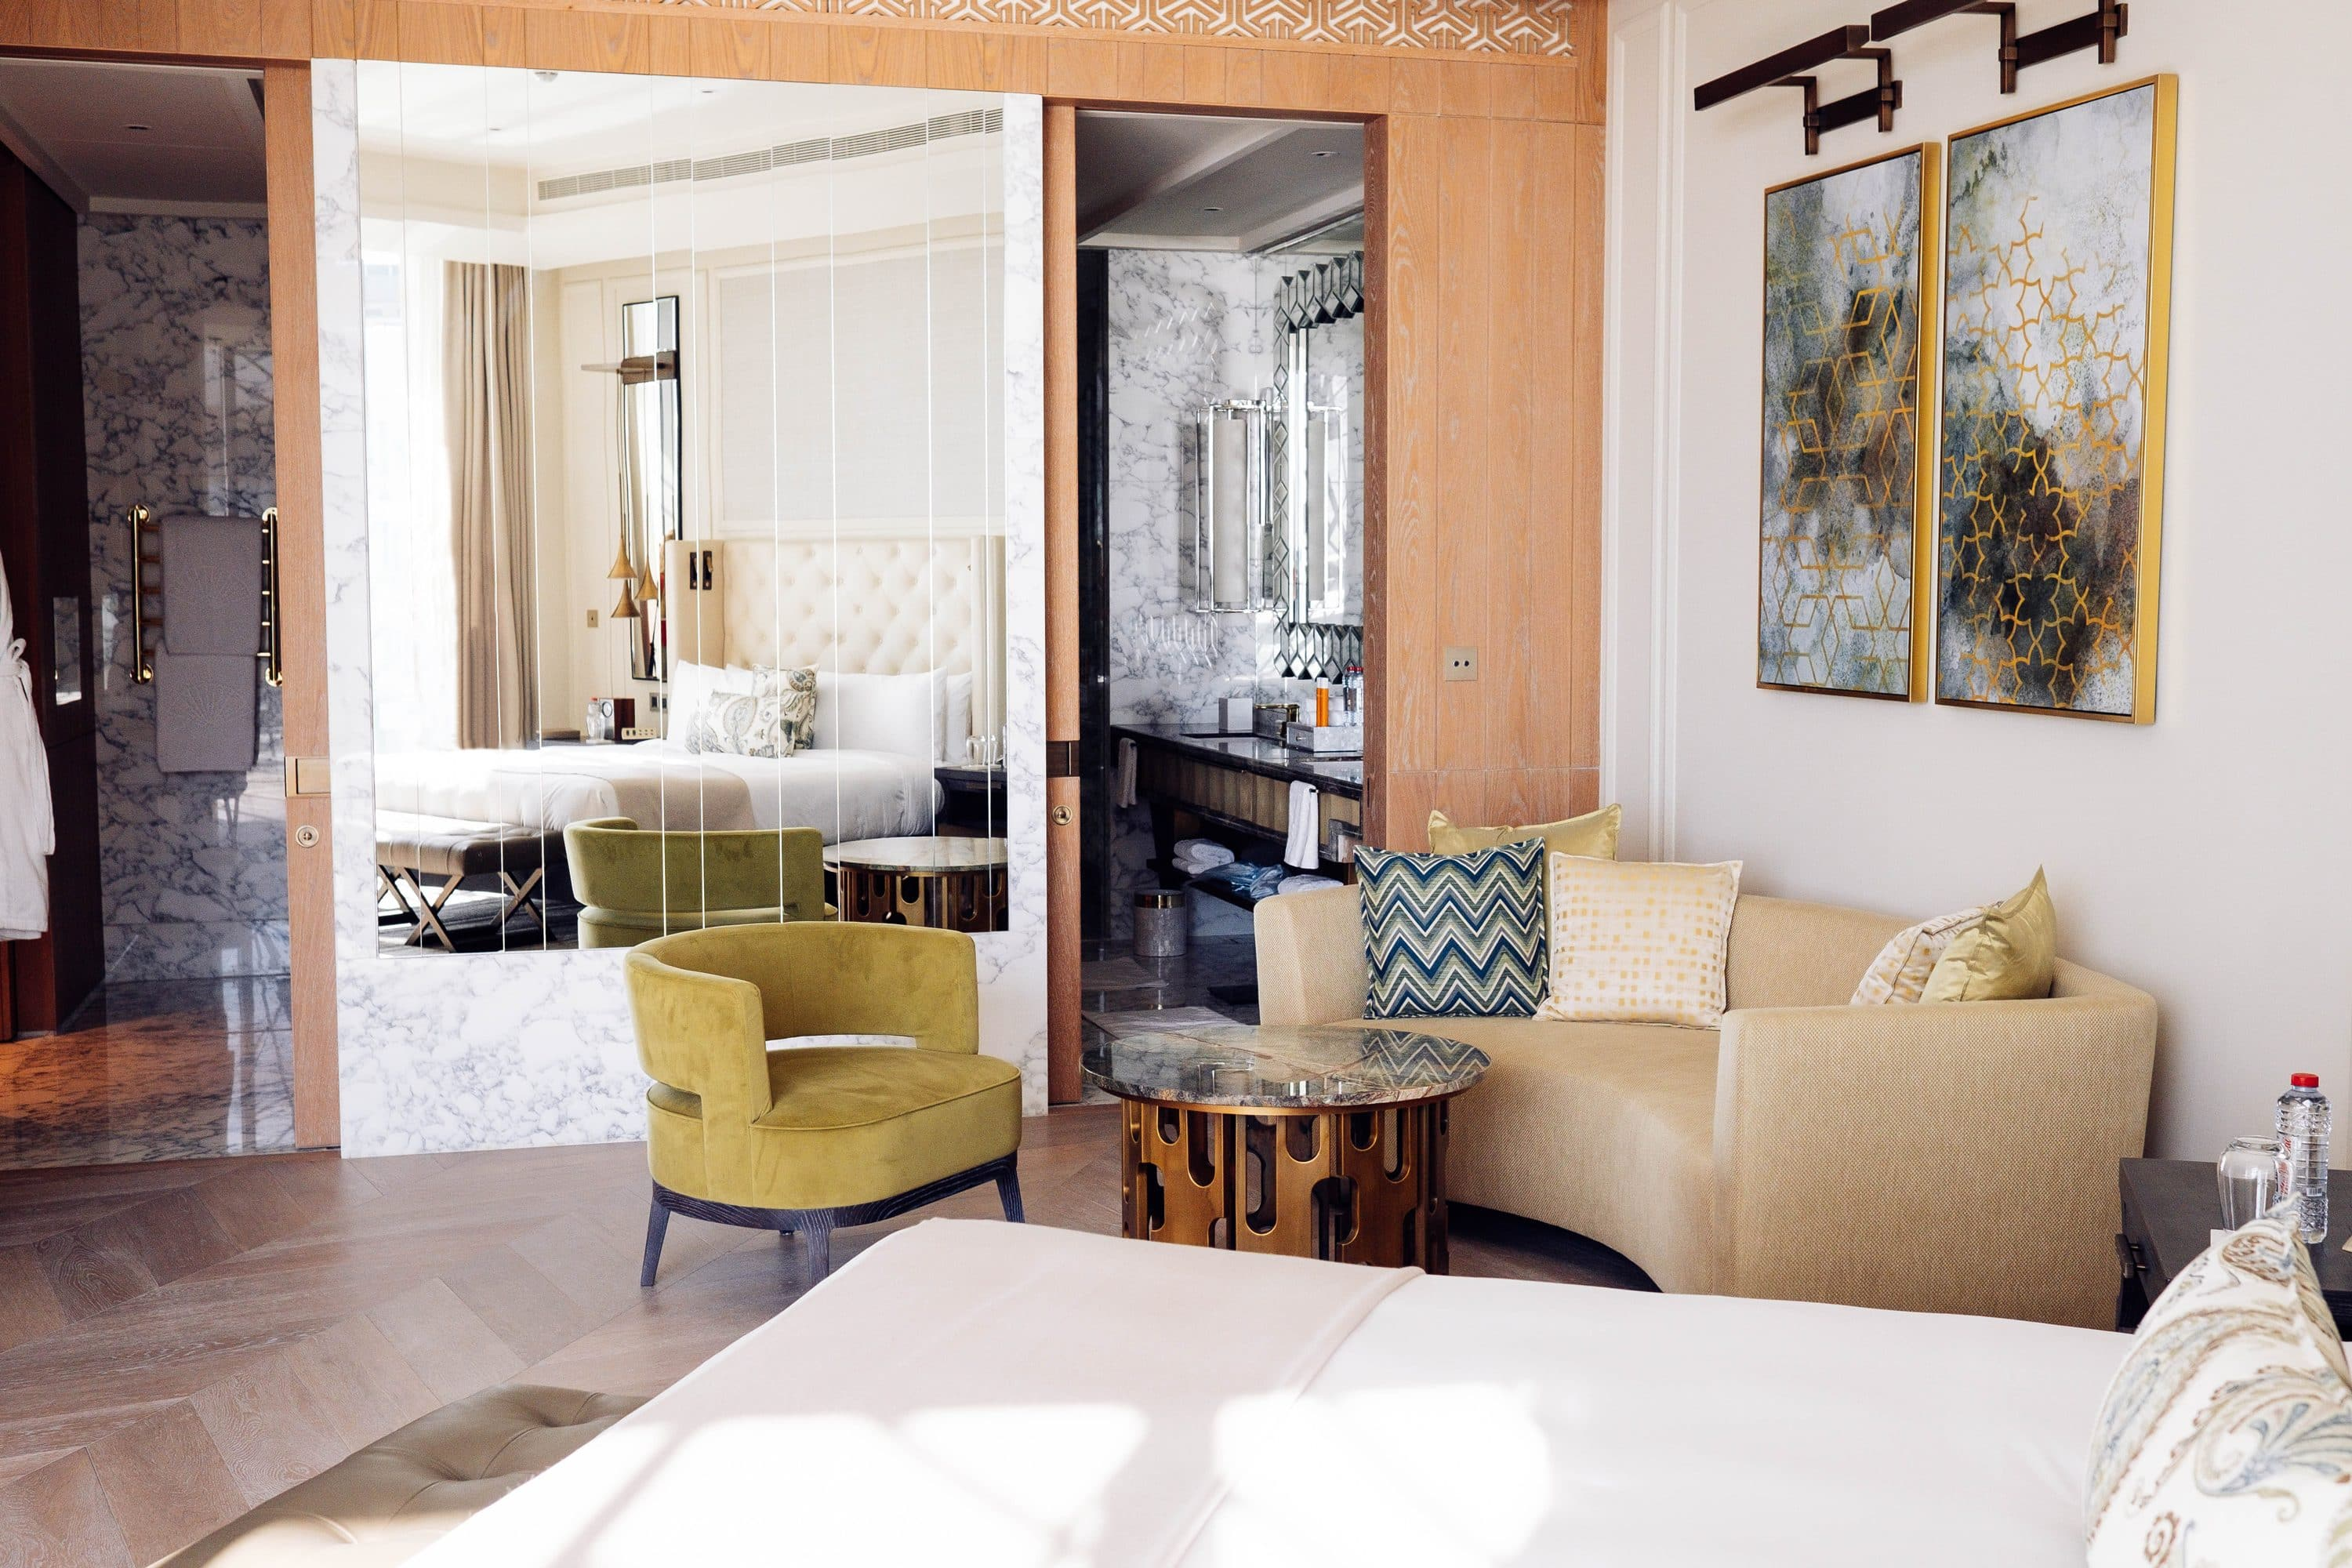 One of the hotel's bedrooms, featuring the lattice work that is characteristic of the area